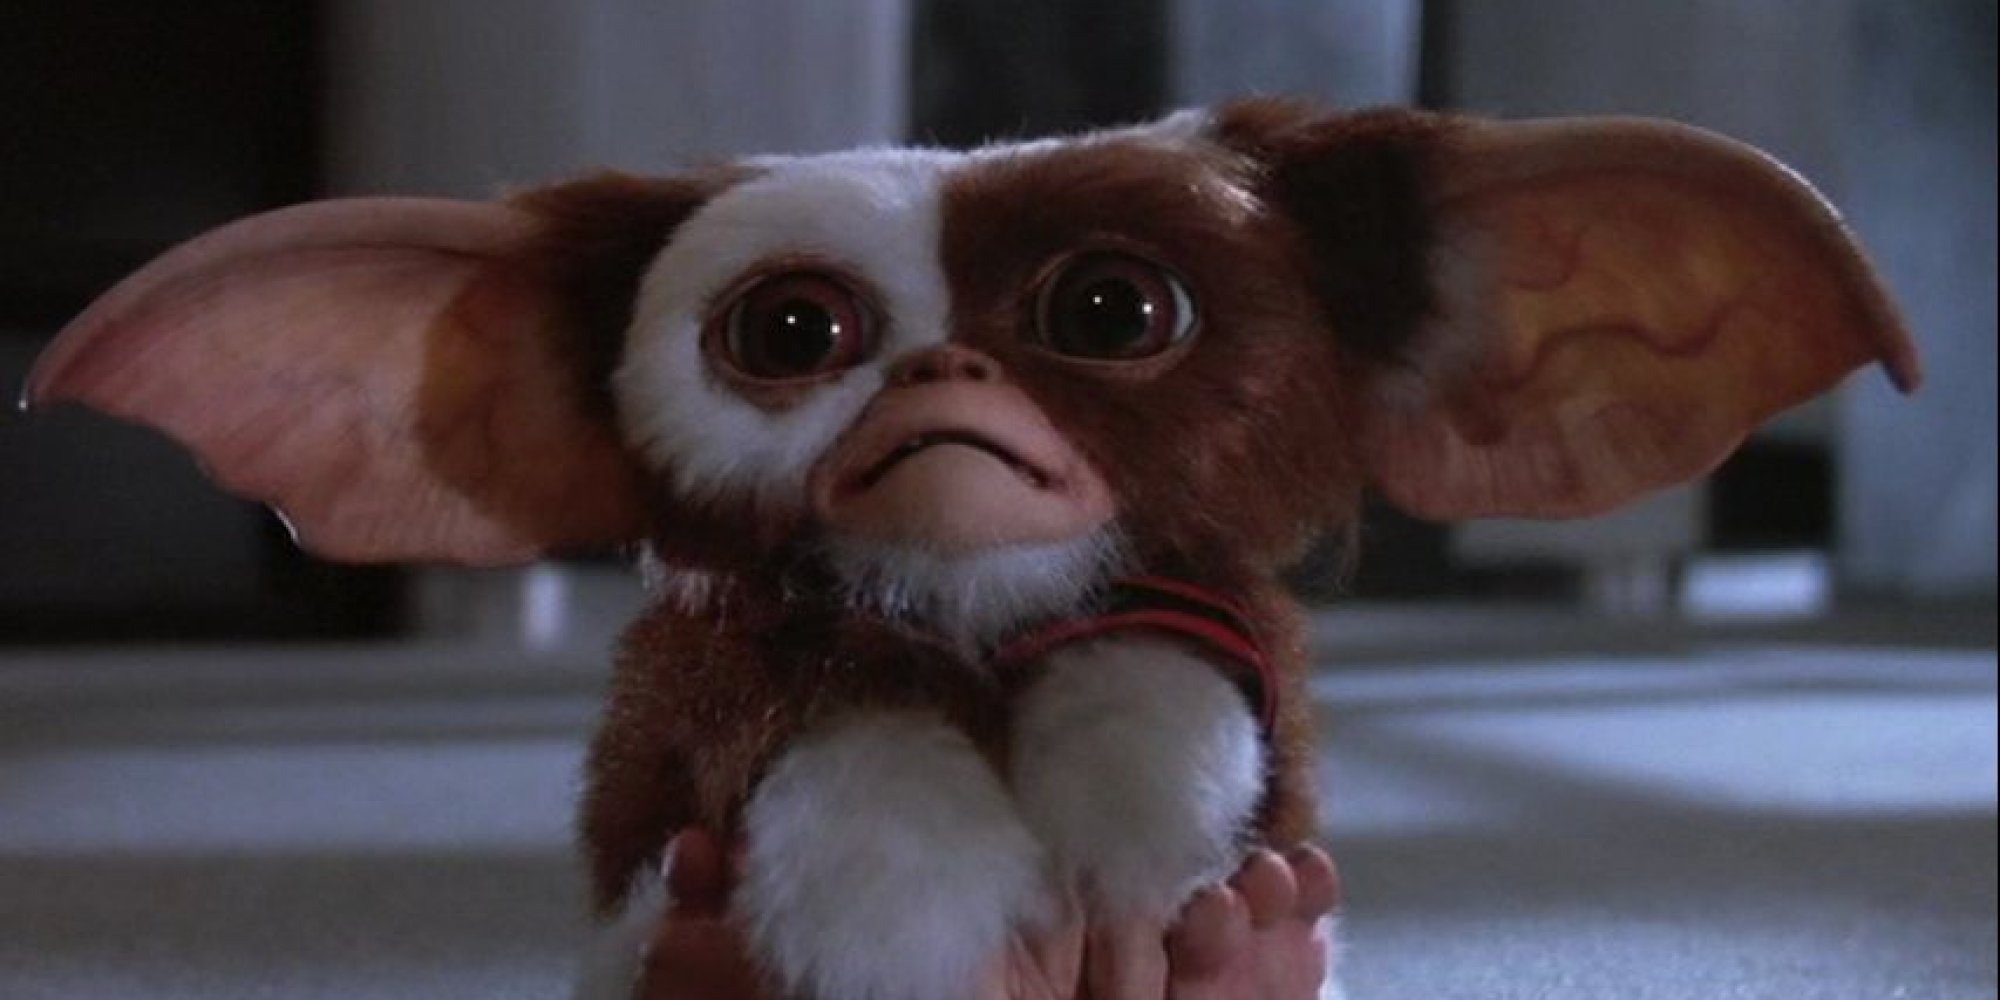 Gizmo from Gremlins knows you need a good non-Christmas Christmas movie to watch.